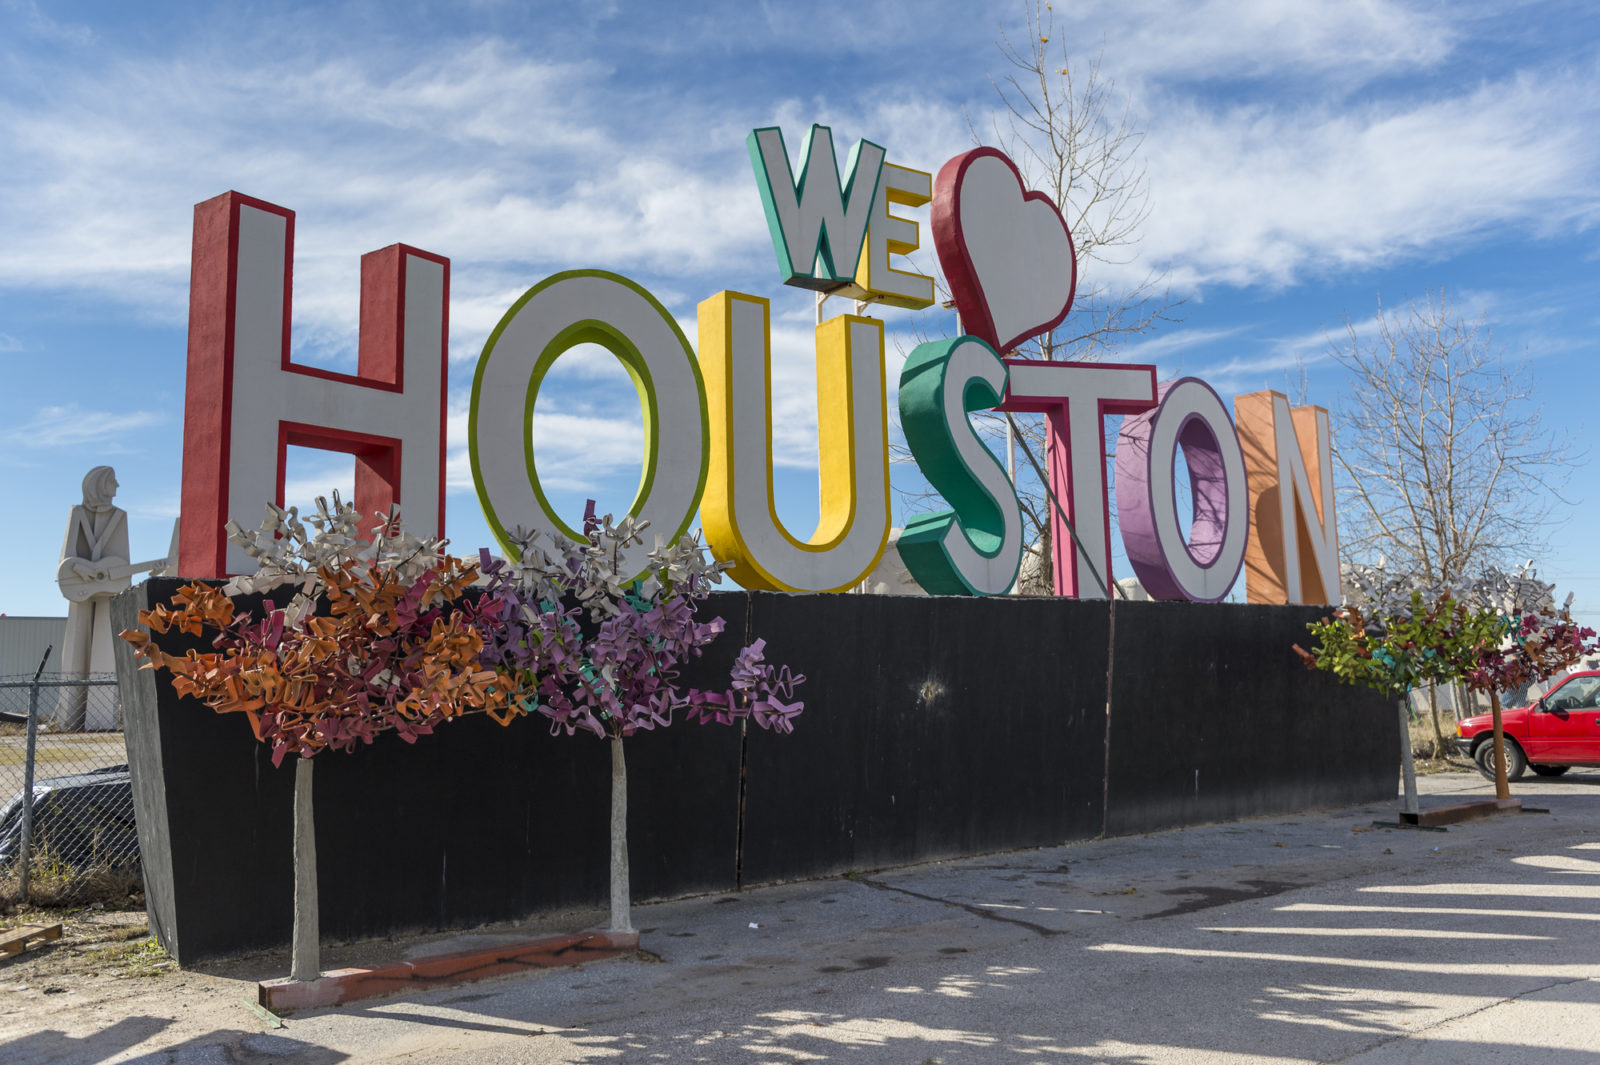 Houston Food Trucks and Landmarks